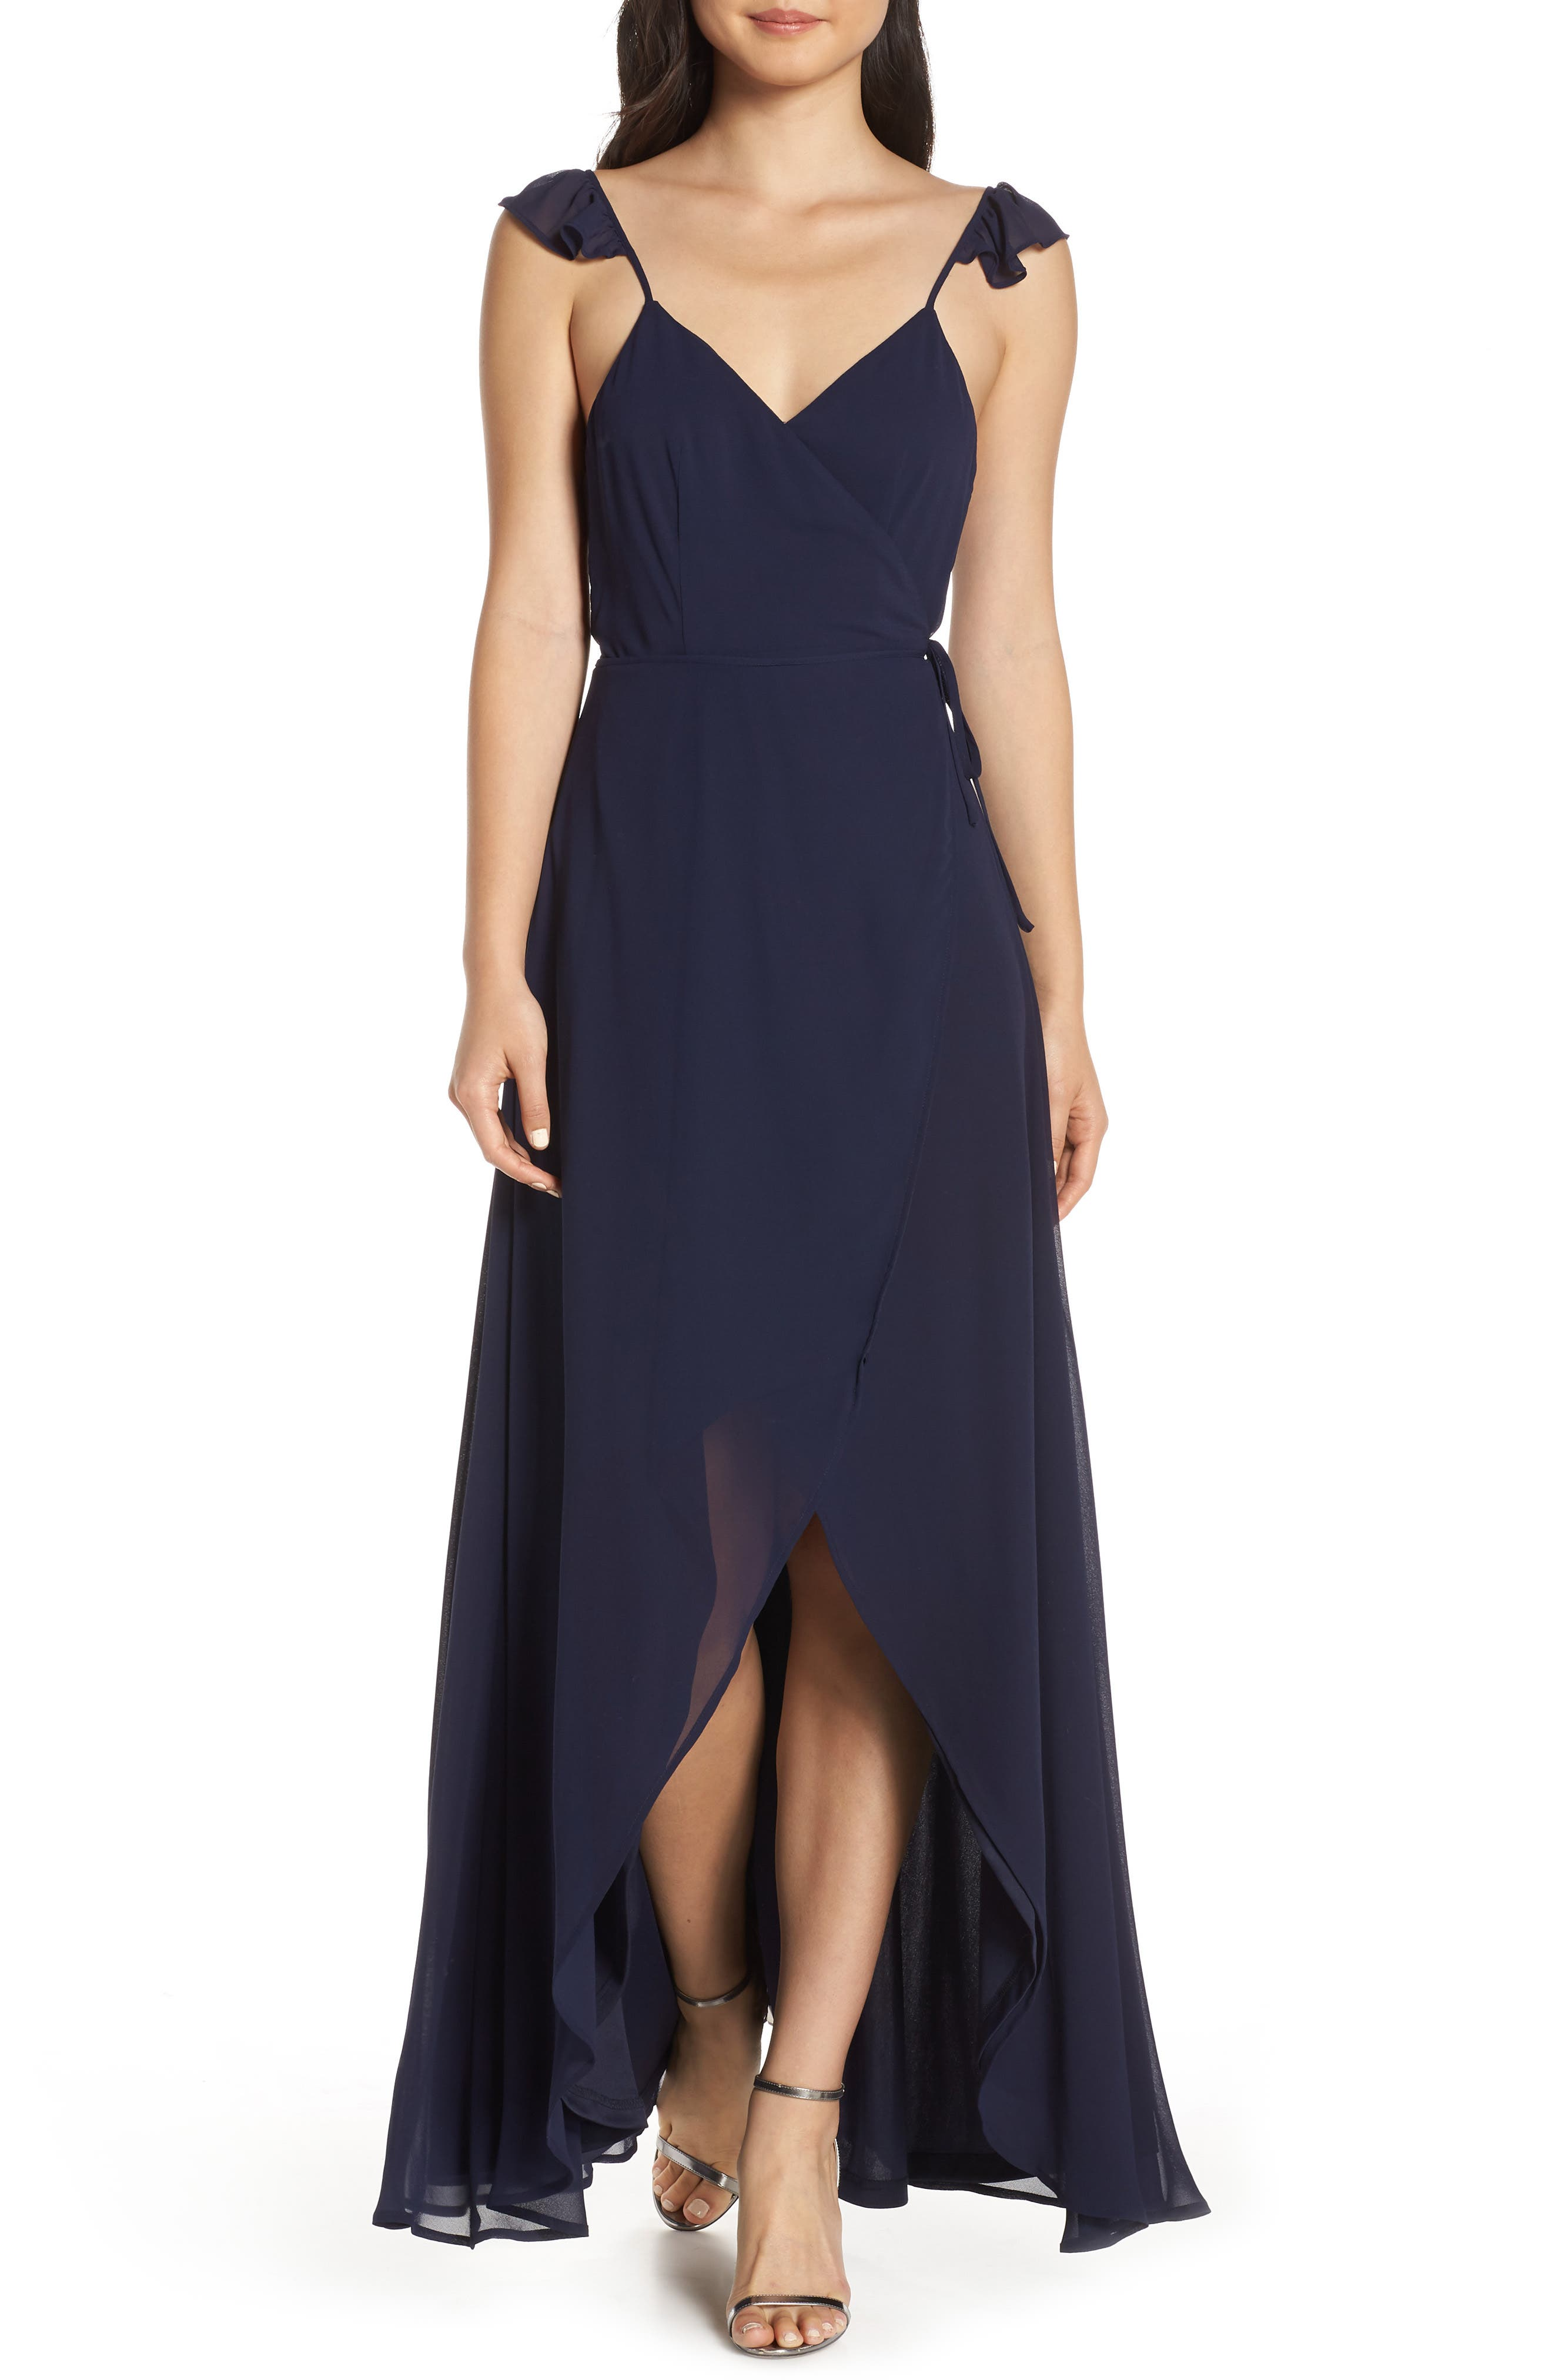 LULUS Here's to Us High/Low Wrap Evening Dress, Main, color, NAVY